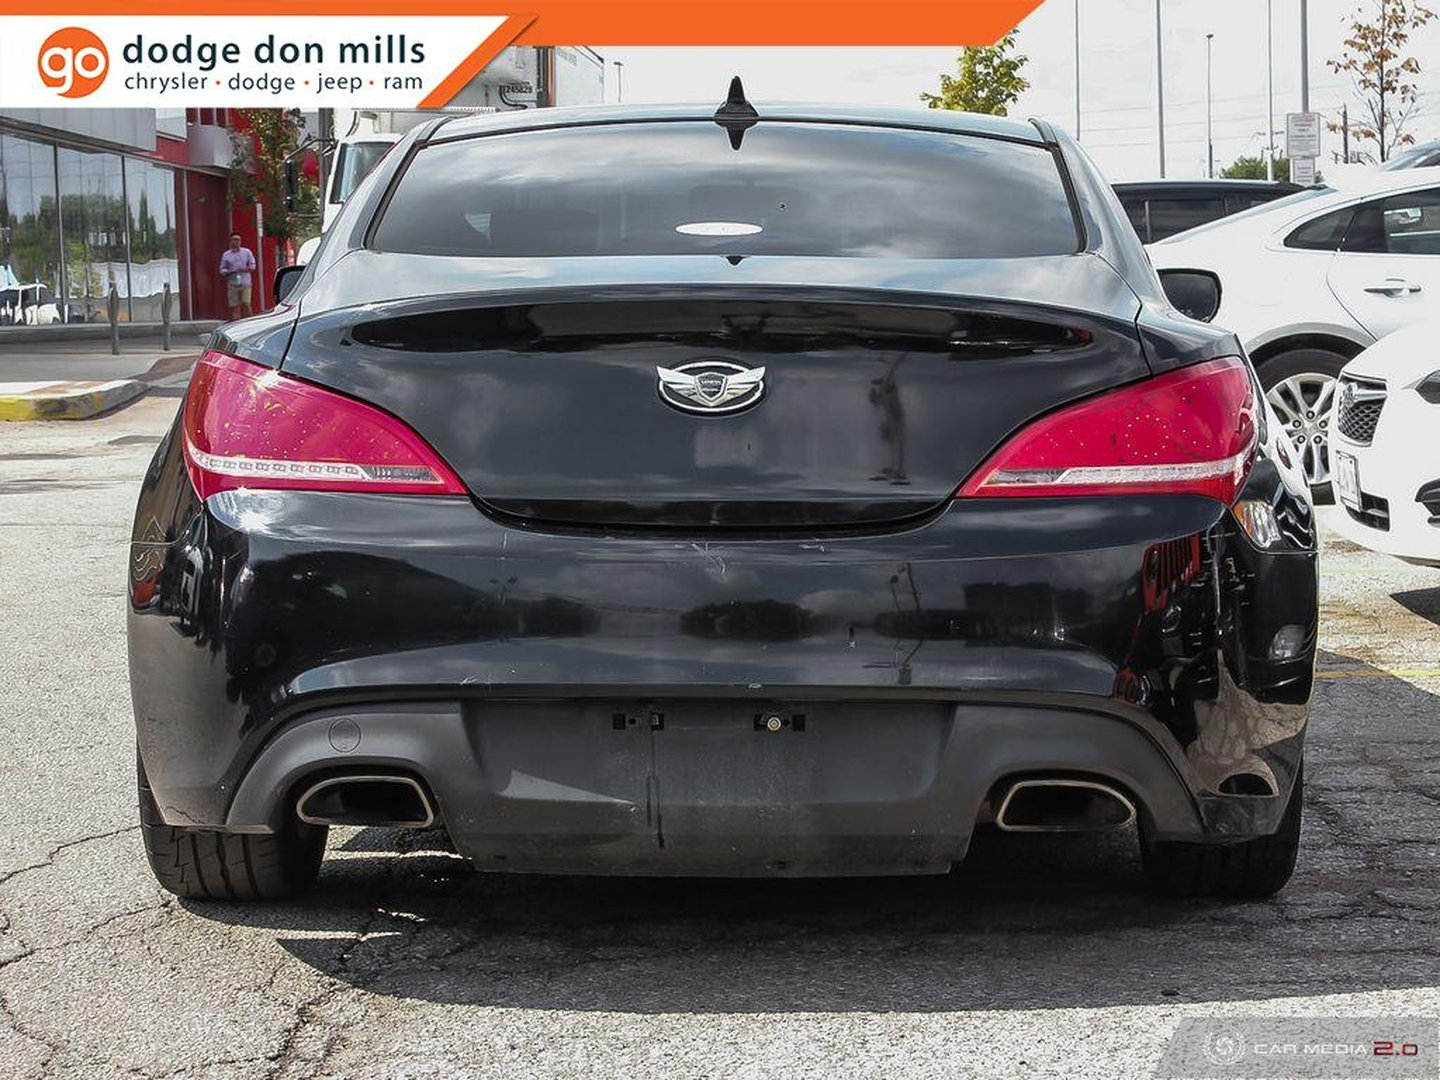 2010 Hyundai Genesis Coupe Premium for sale in Toronto, Ontario